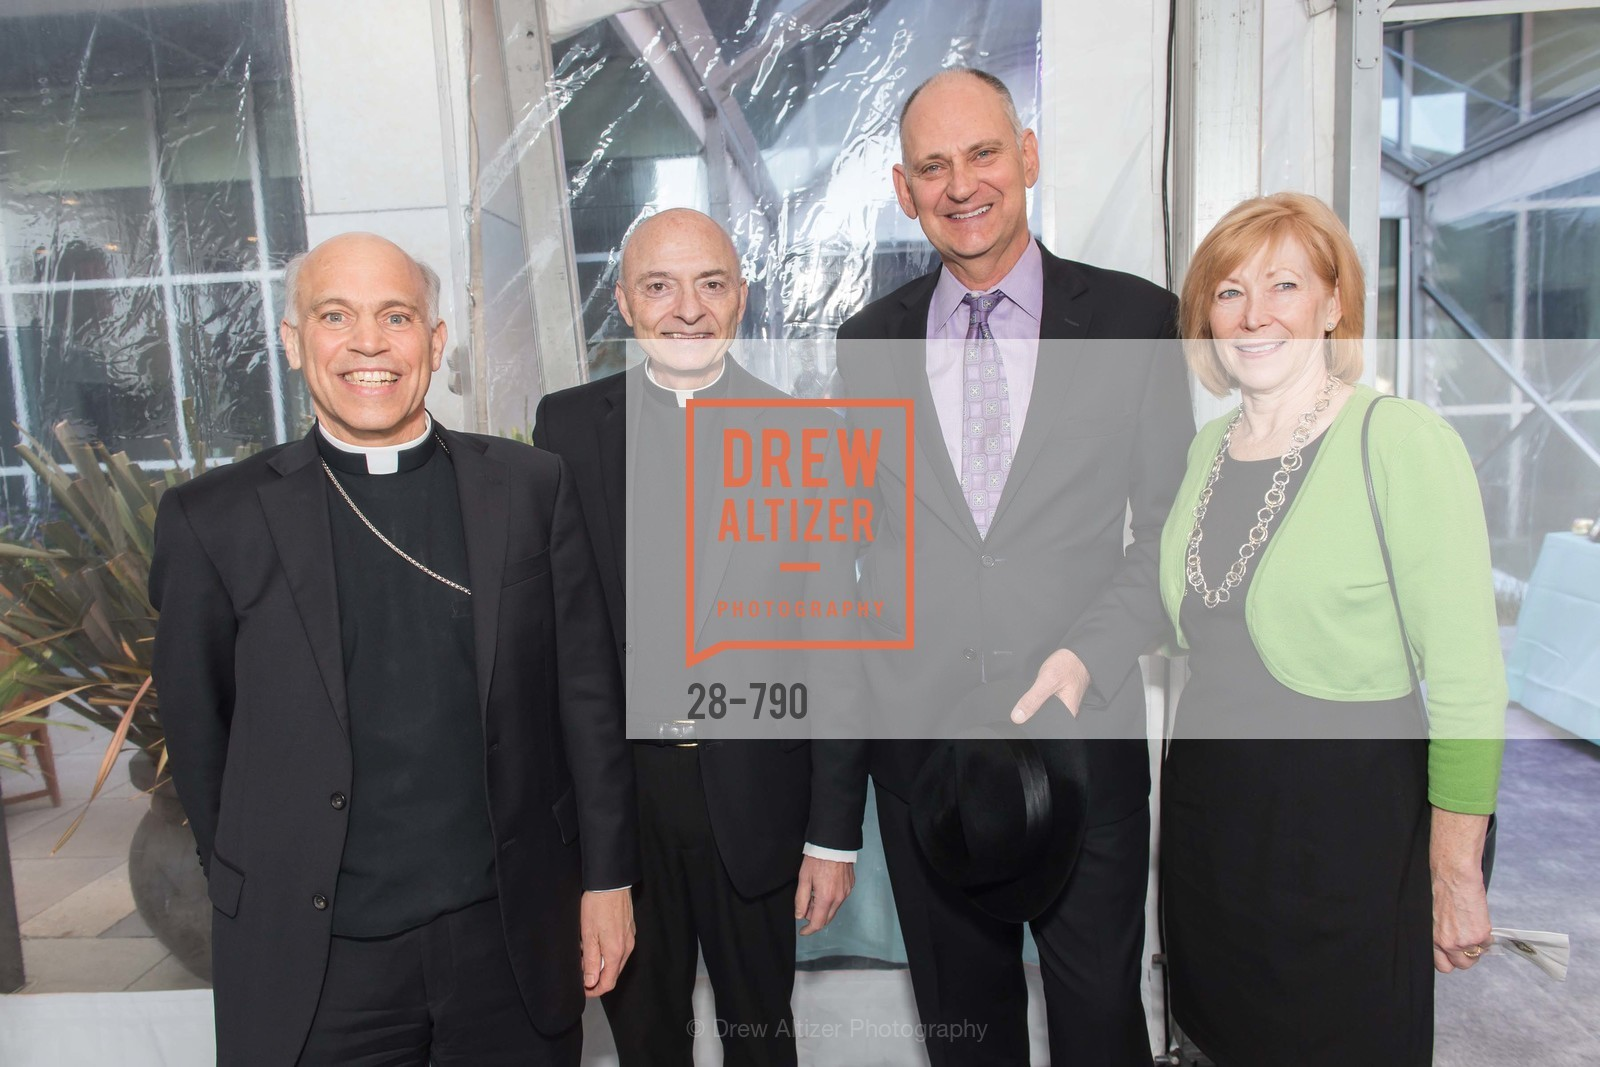 Archbishop Salvatore Cordileone, Msgr. James Tarantino, Jim LaRocca, Pat Larocca, Post War and Contemporary Preview at HEDGE GALLERY, US, April 16th, 2015,Drew Altizer, Drew Altizer Photography, full-service agency, private events, San Francisco photographer, photographer california